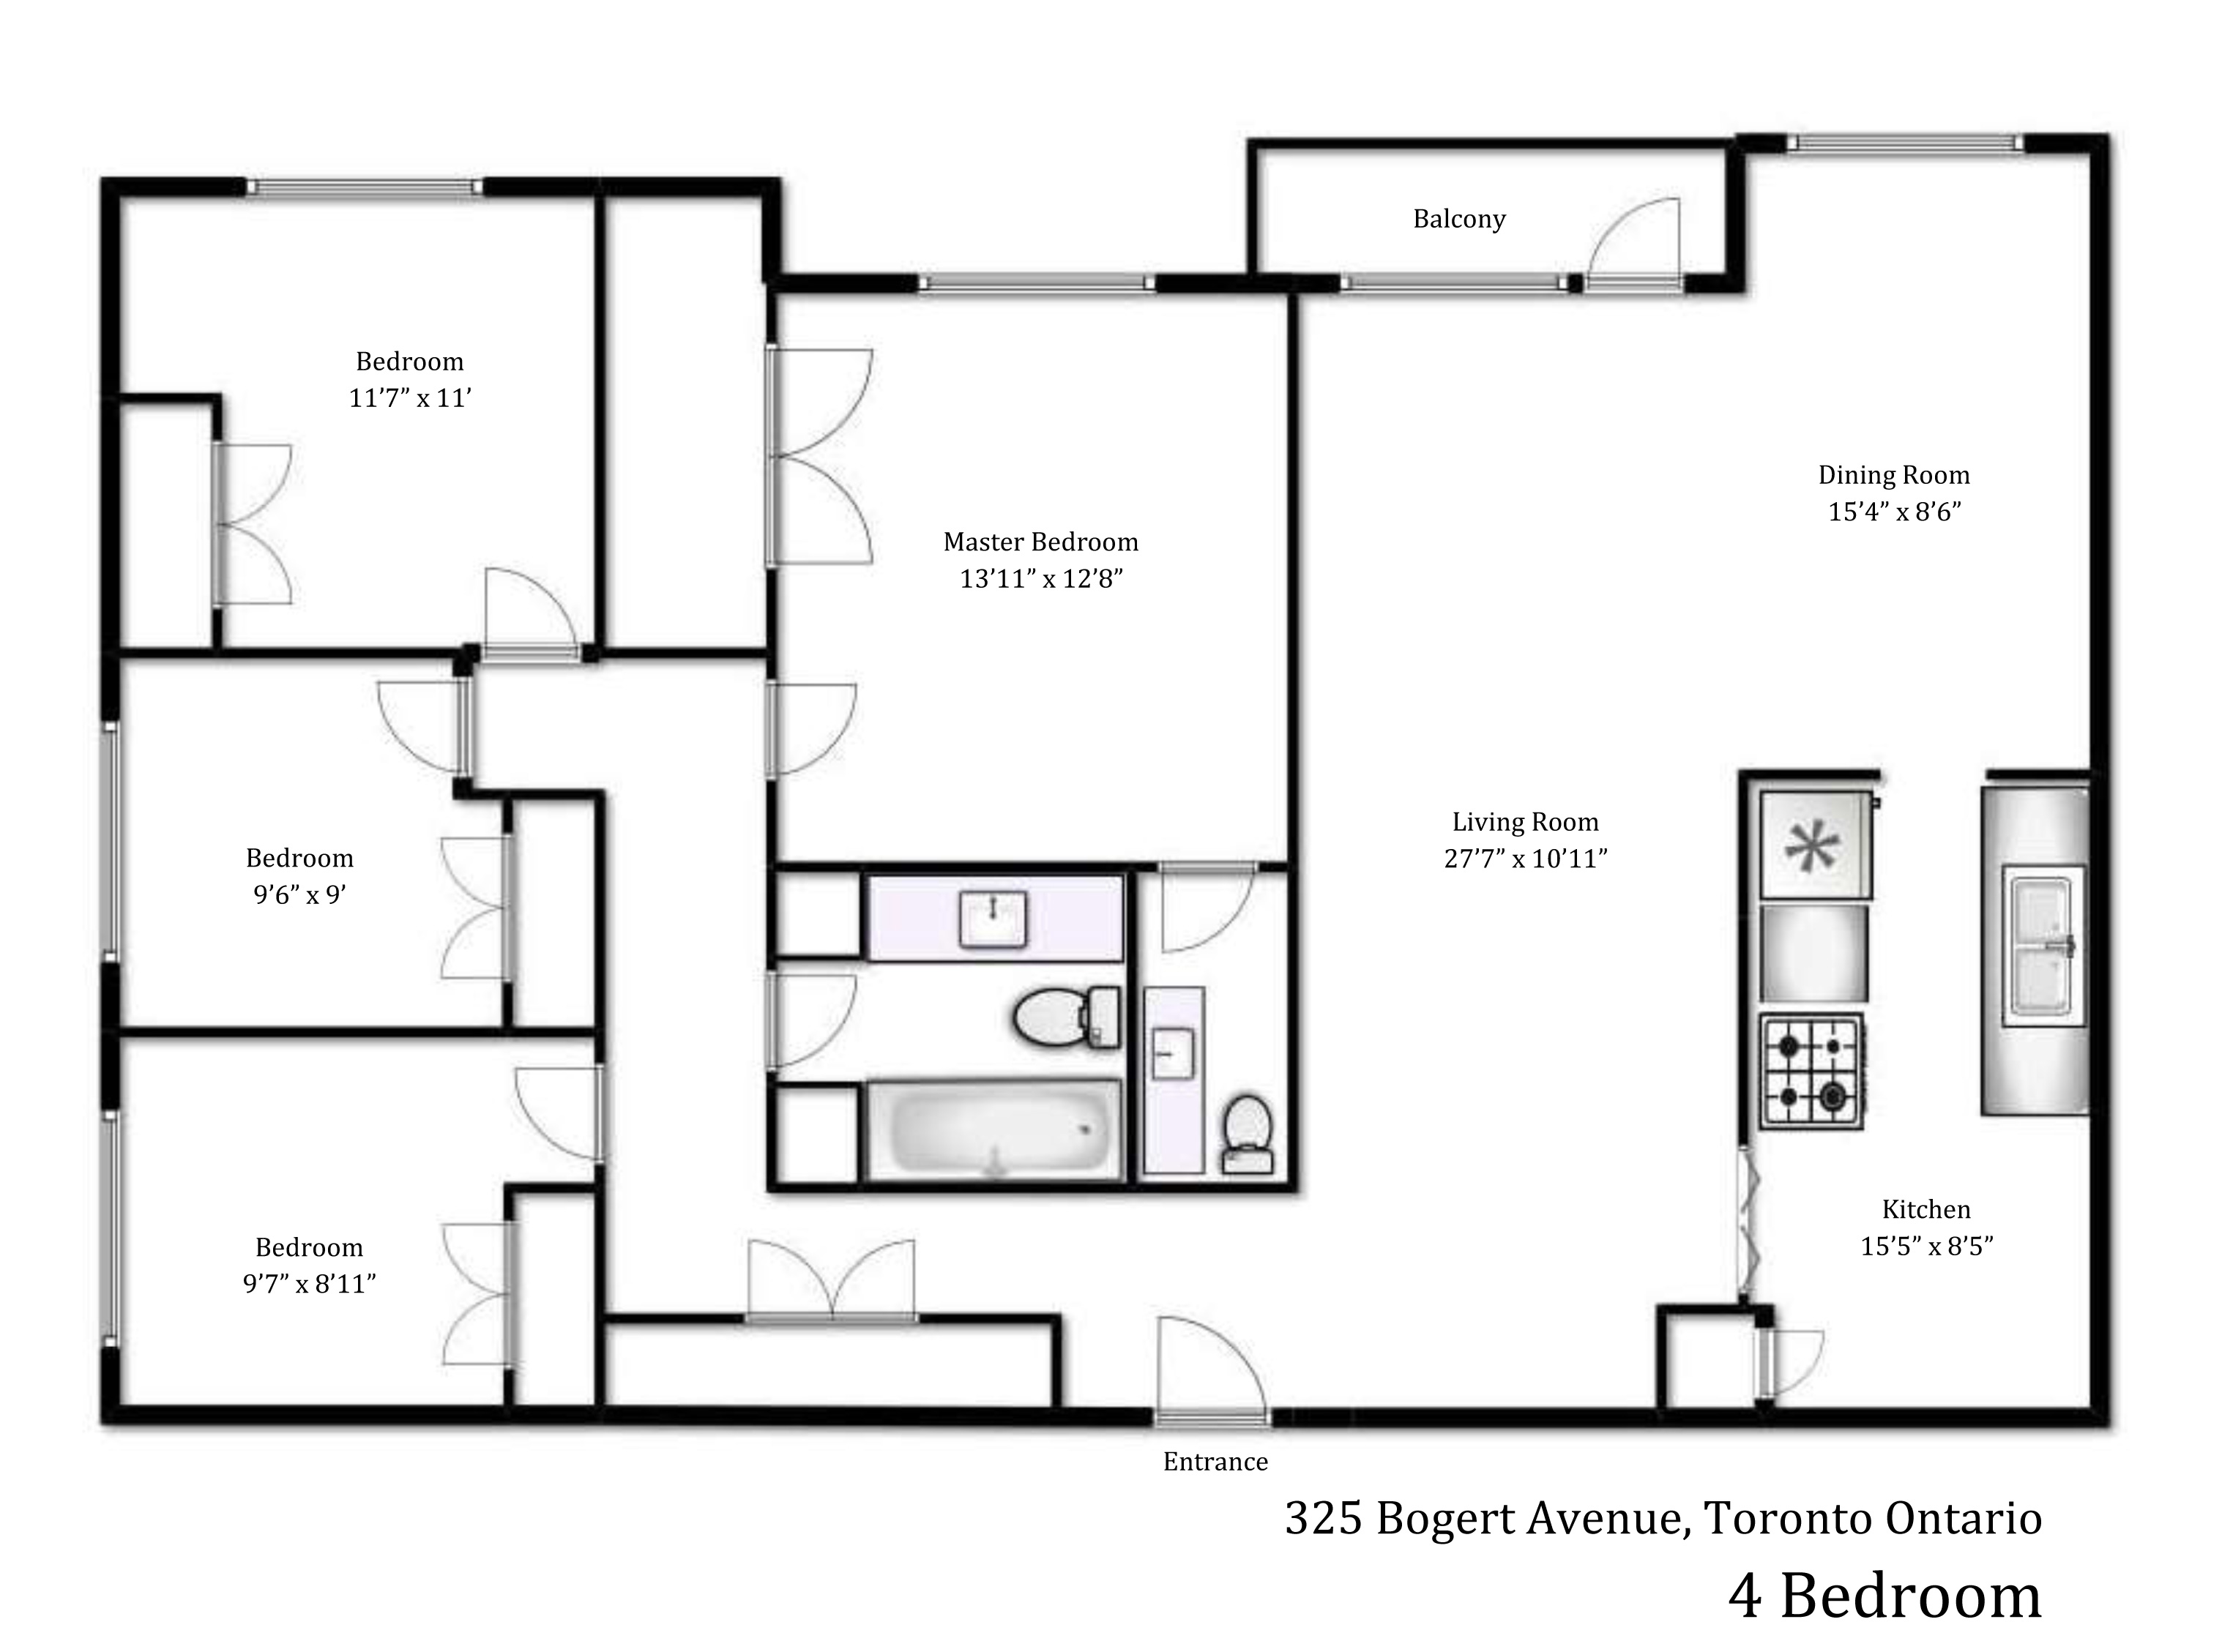 Gallery heath residence 325 bogert ave for 9 bedroom floor plans